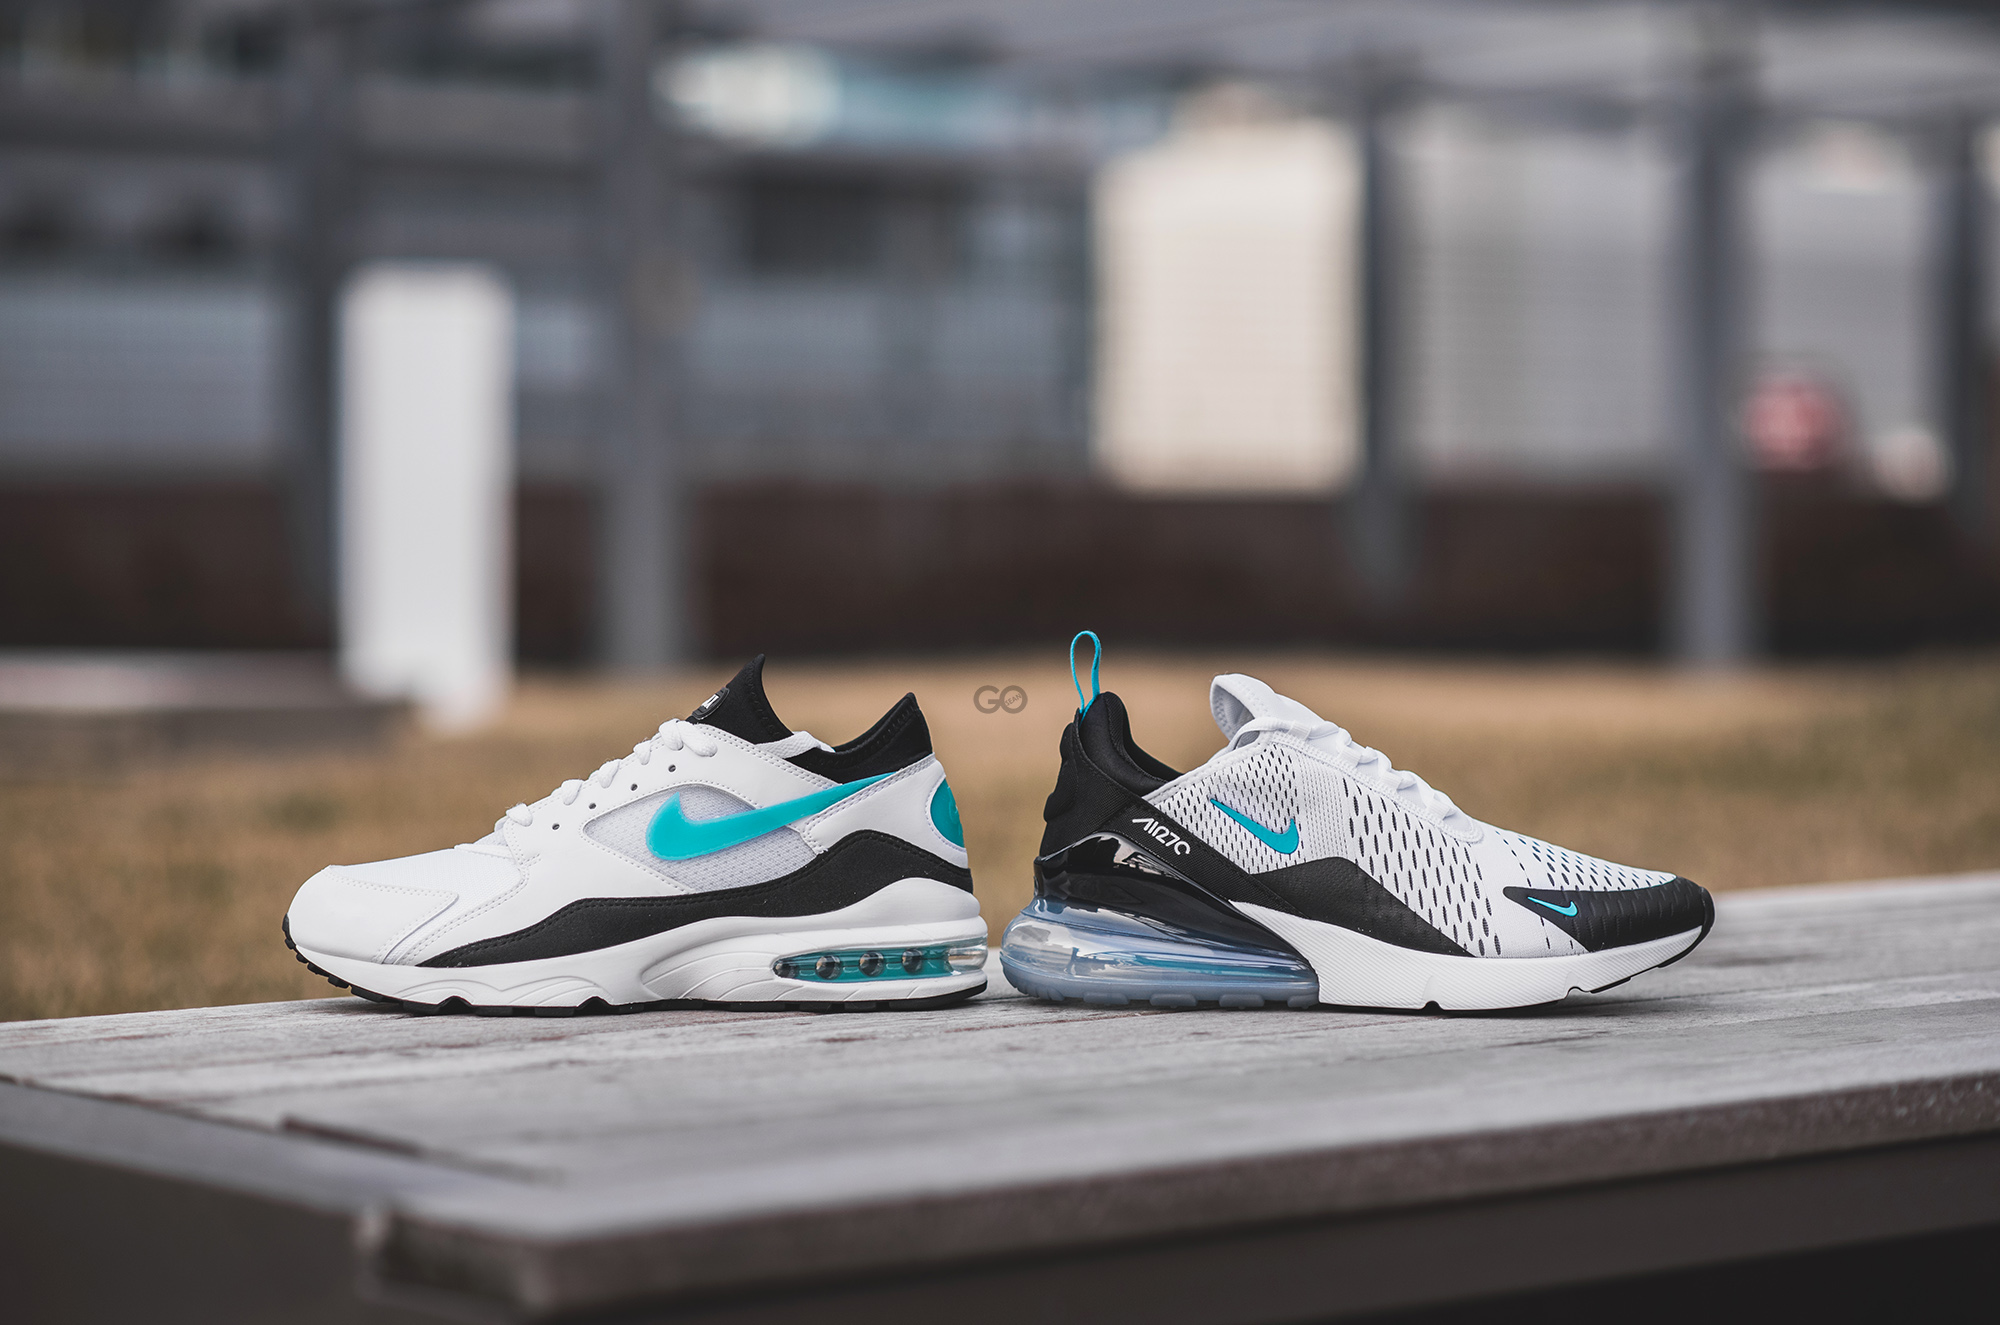 55ff2b66cbb ... greece nike air max 270 dusty cactus review sean go adb48 a5068 ...